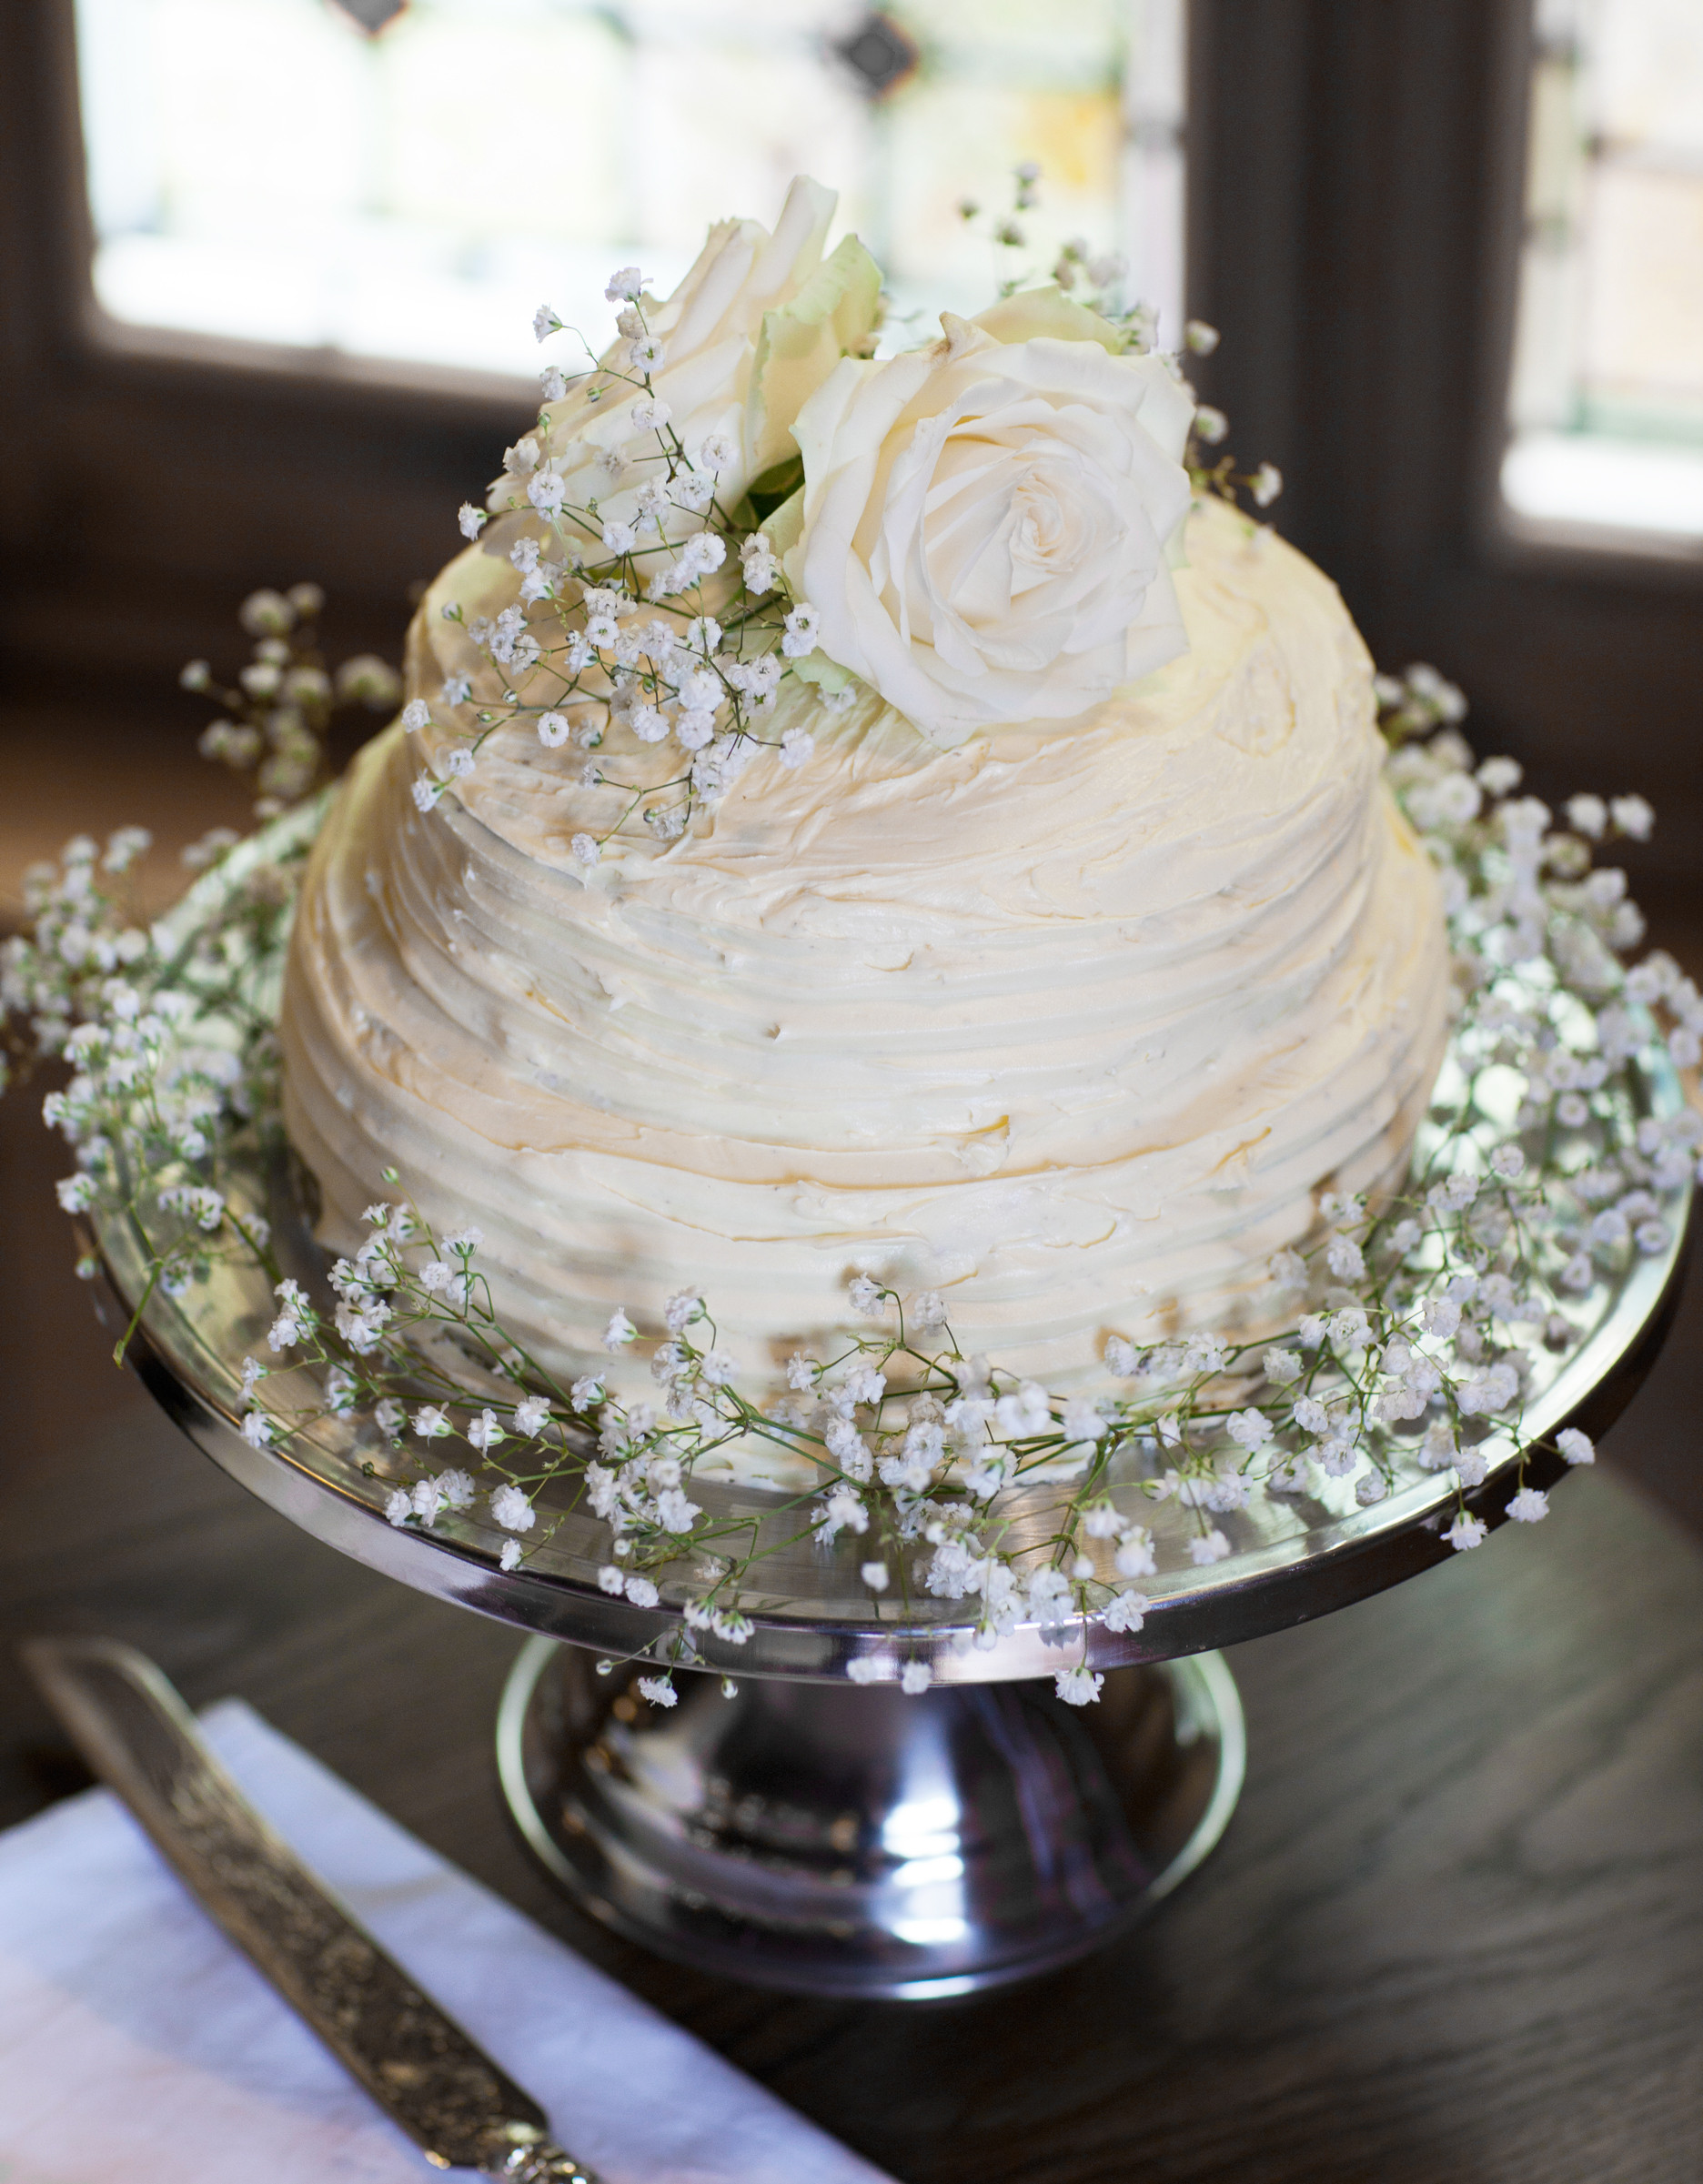 Wedding Cakes Ingredients  Homemade Wedding Cake Ideas And Recipes Homemade Ftempo